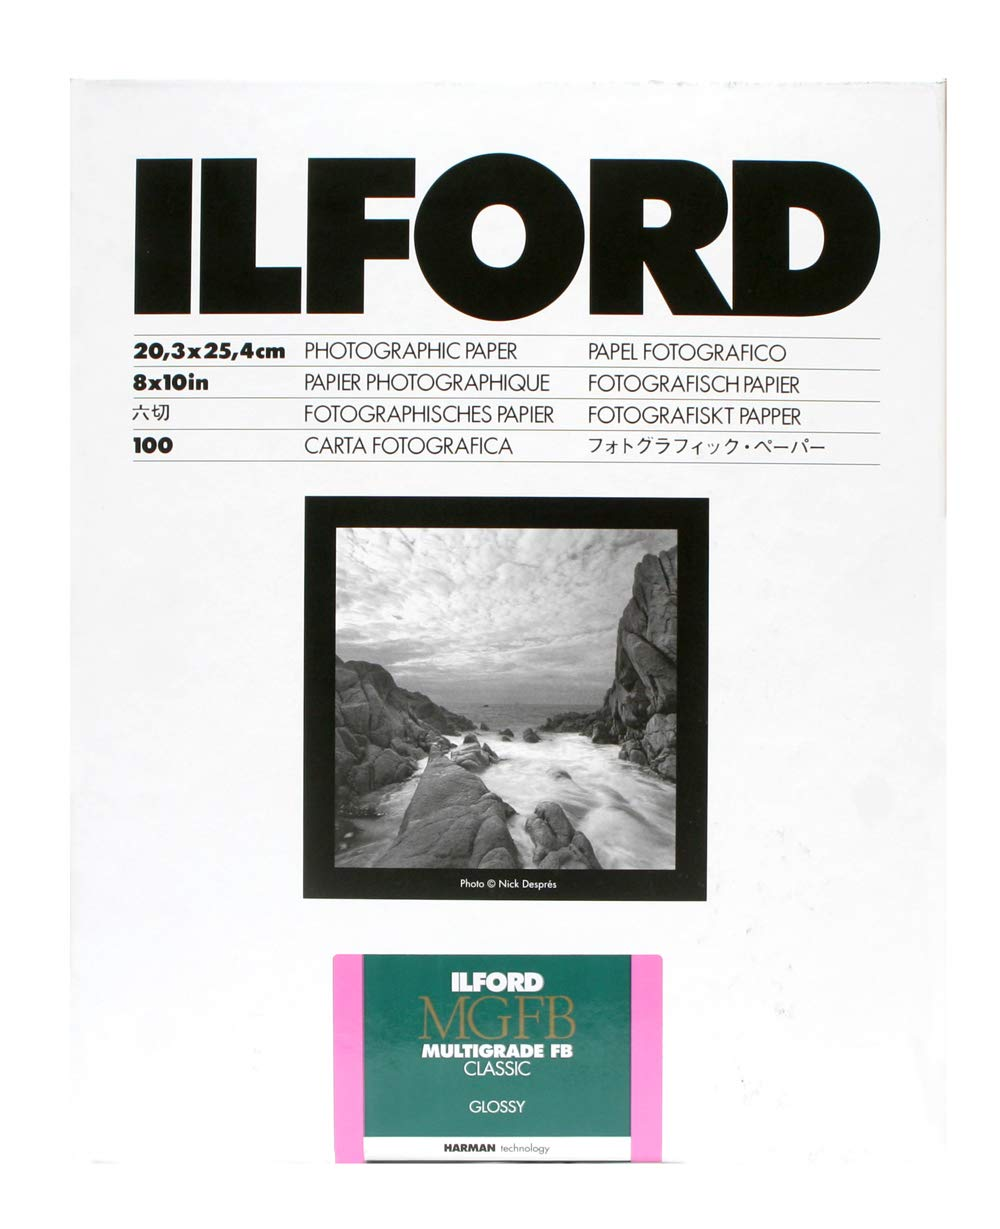 Ilford Multigrade FB Classic Gloss Variable Contrast Paper (5 x 7'', 100 Sheets) by Ilford